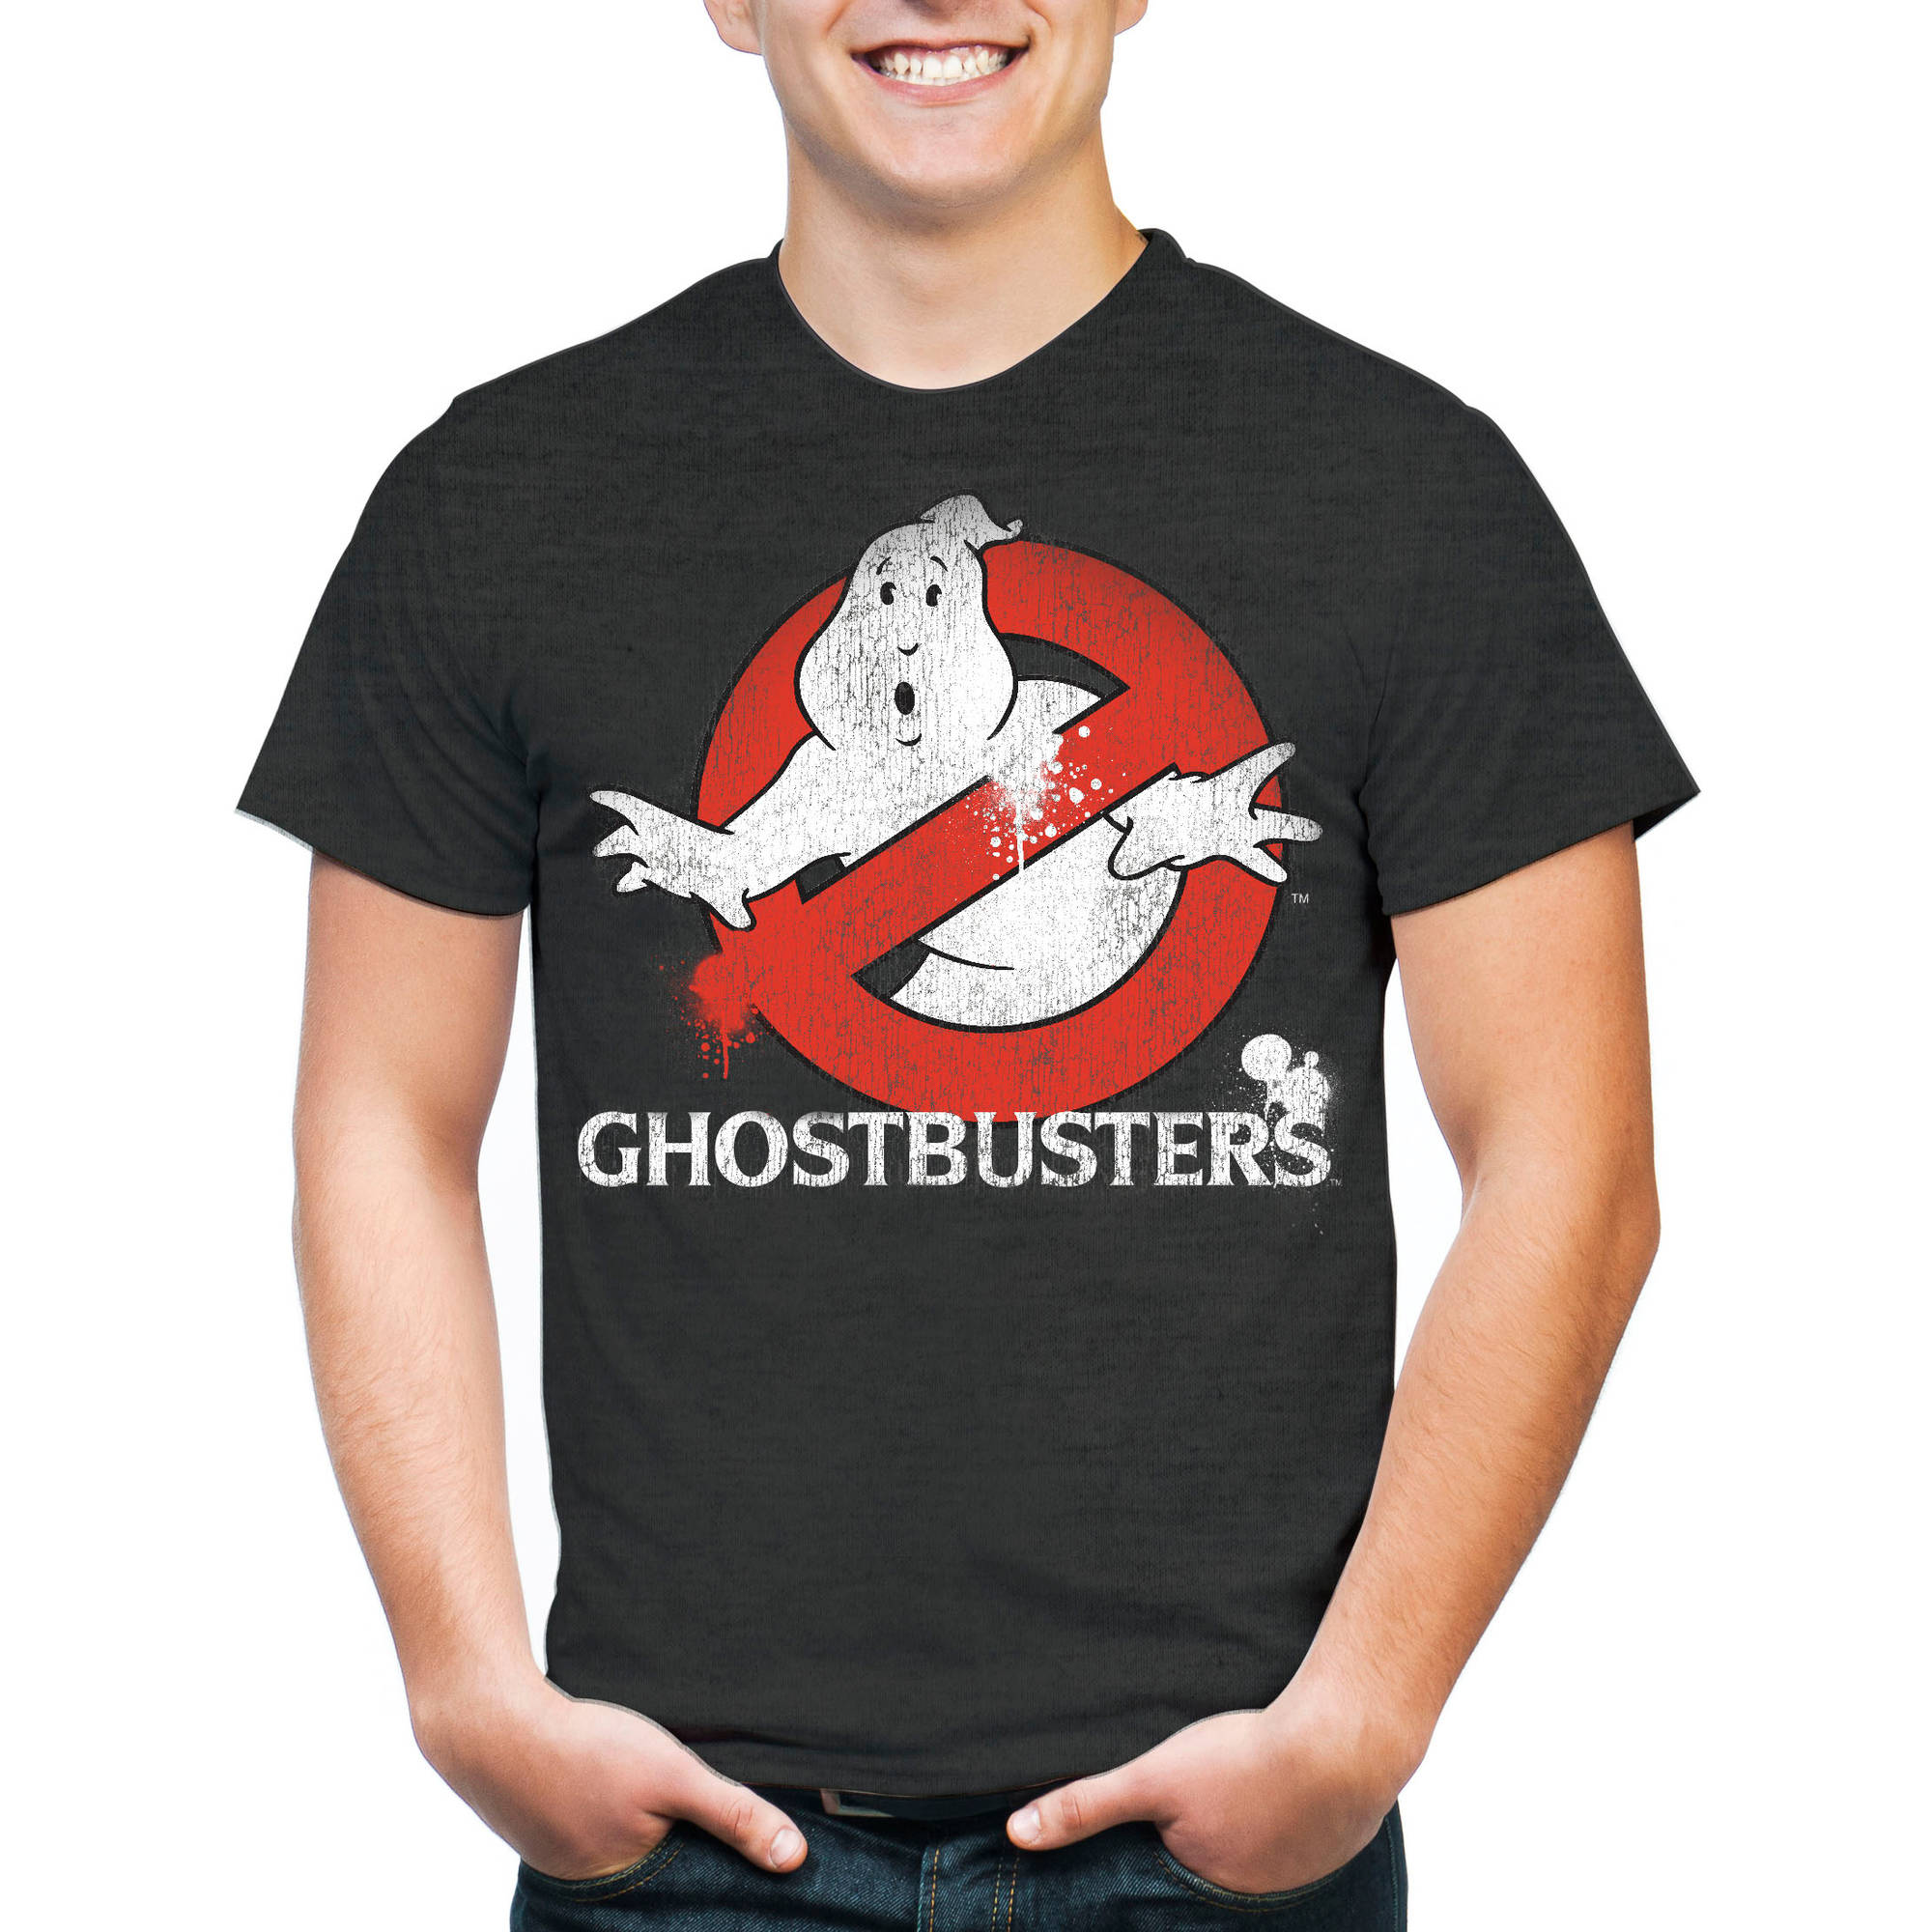 Ghostbuster Big Men's Classic Logo Short Sleeve T-Shirt, 2XL